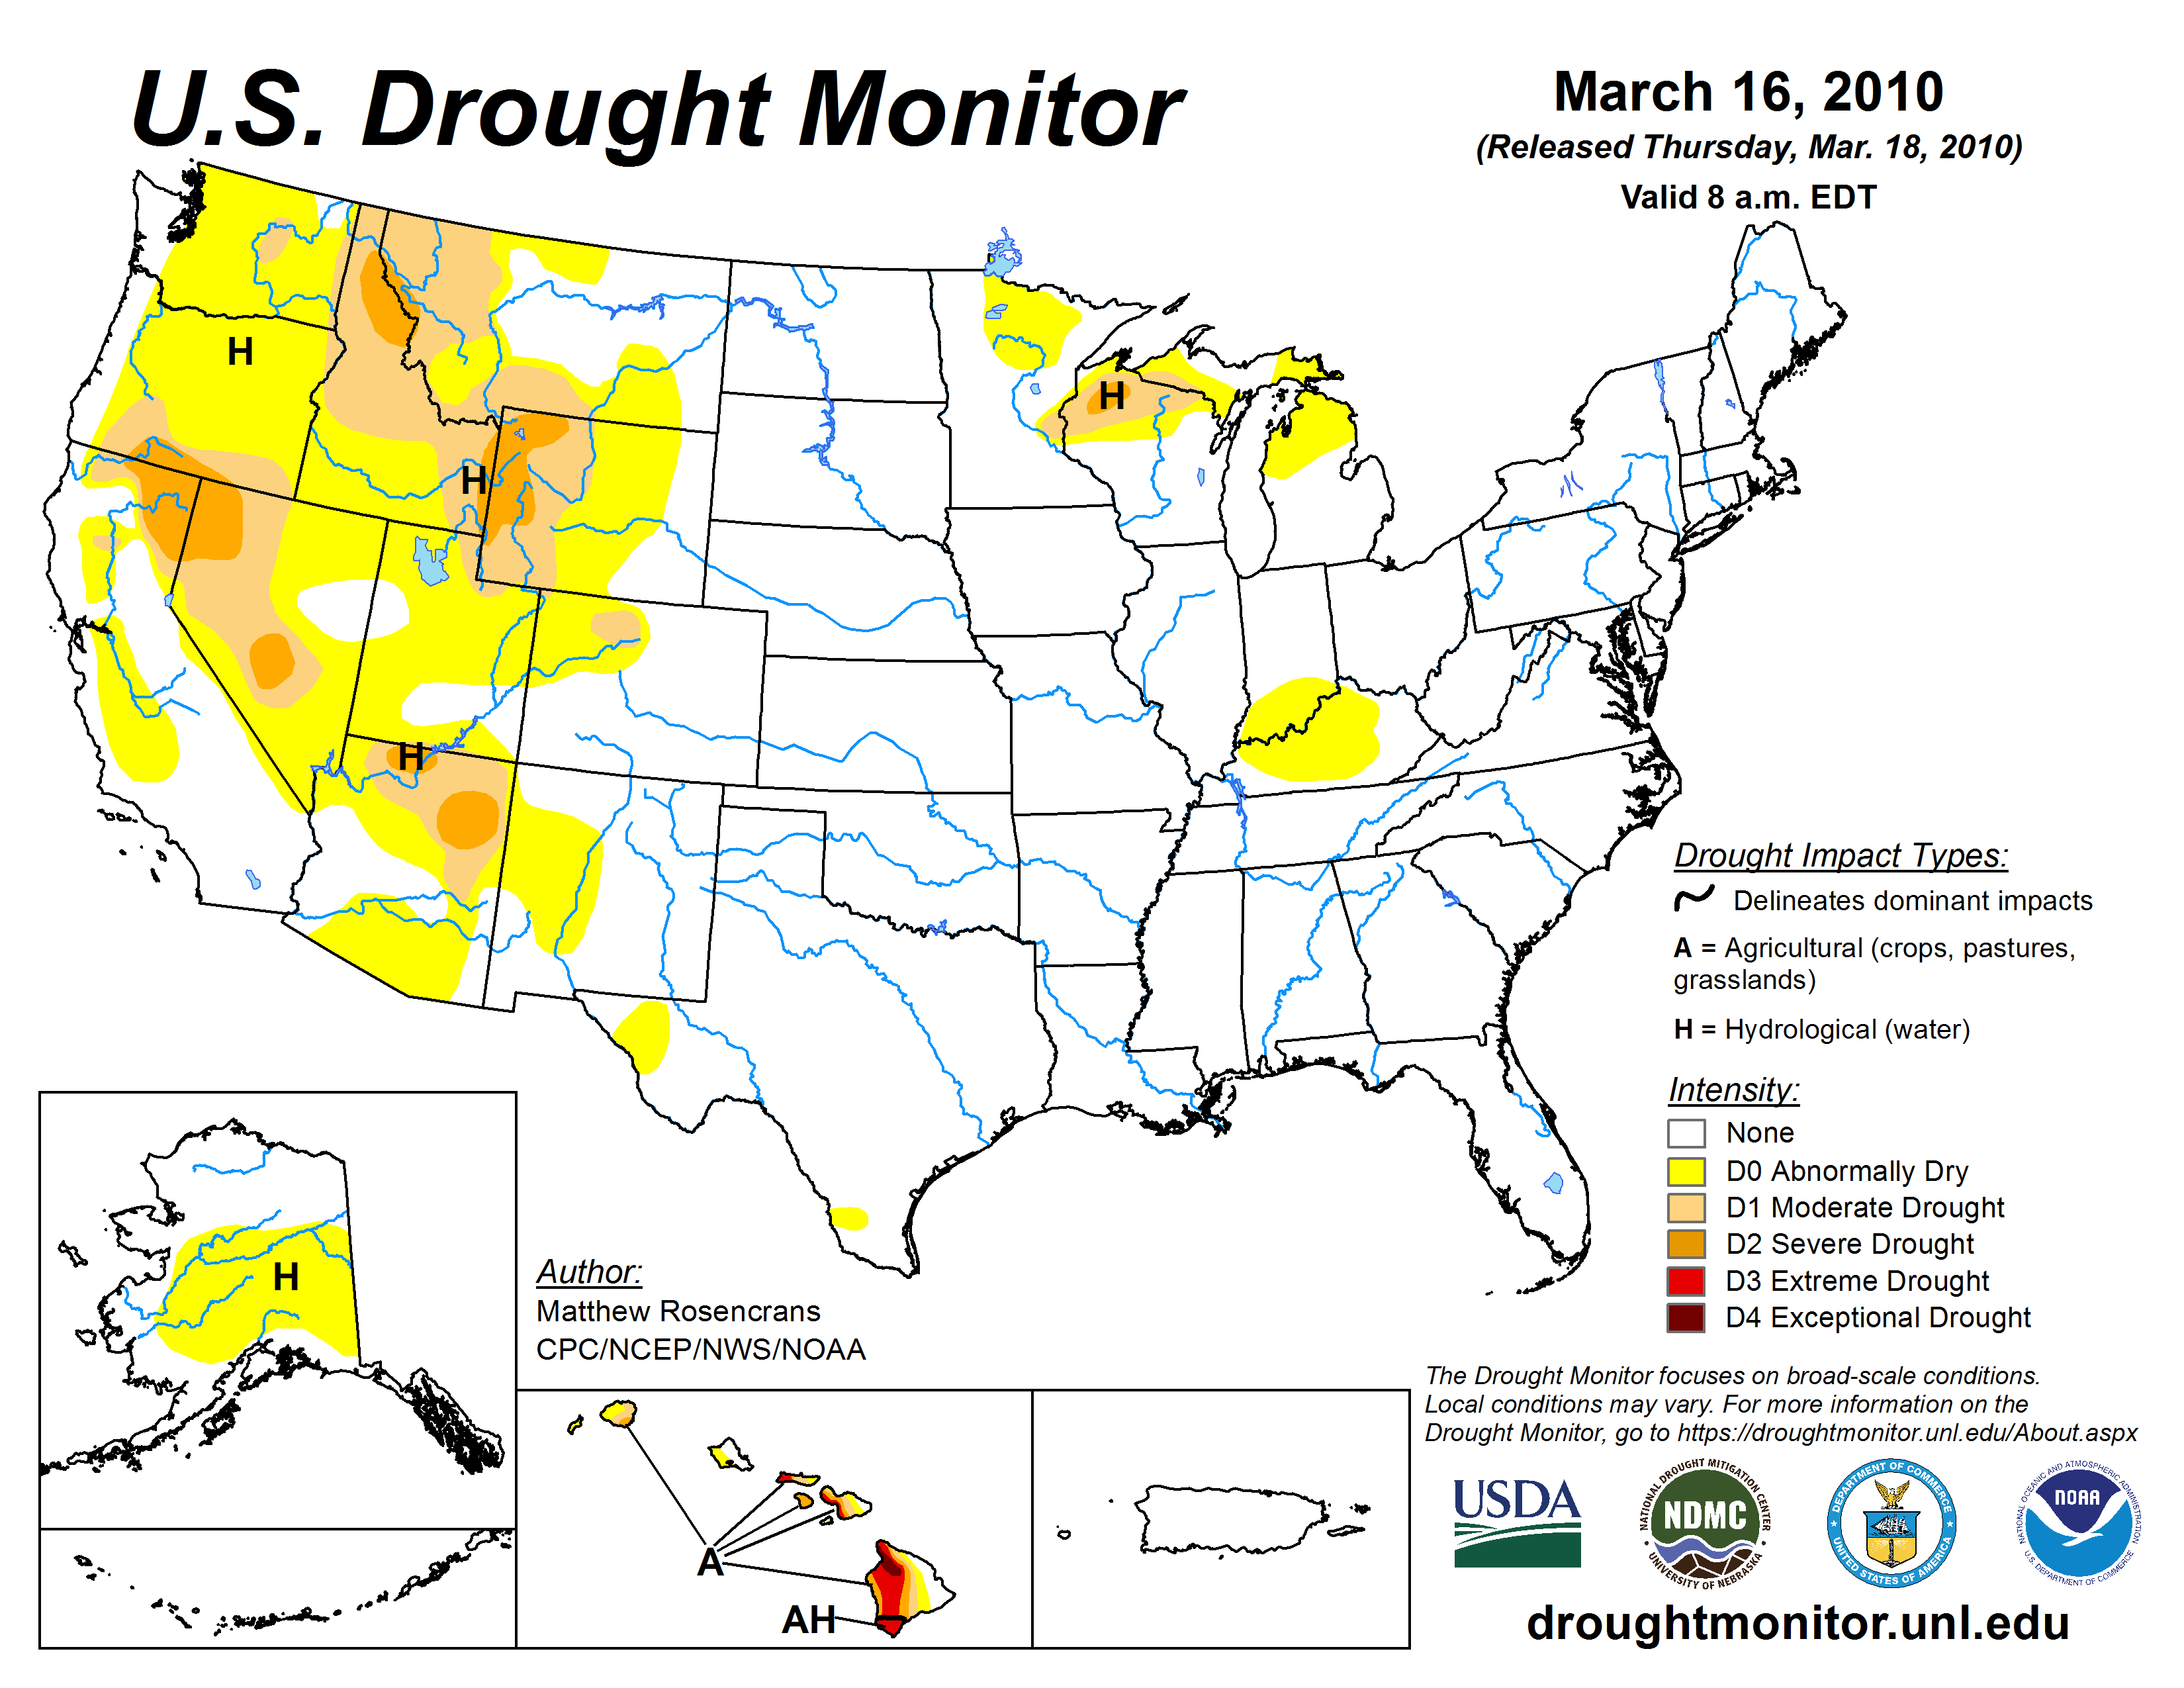 US Drought Monitor, March 16, 2010